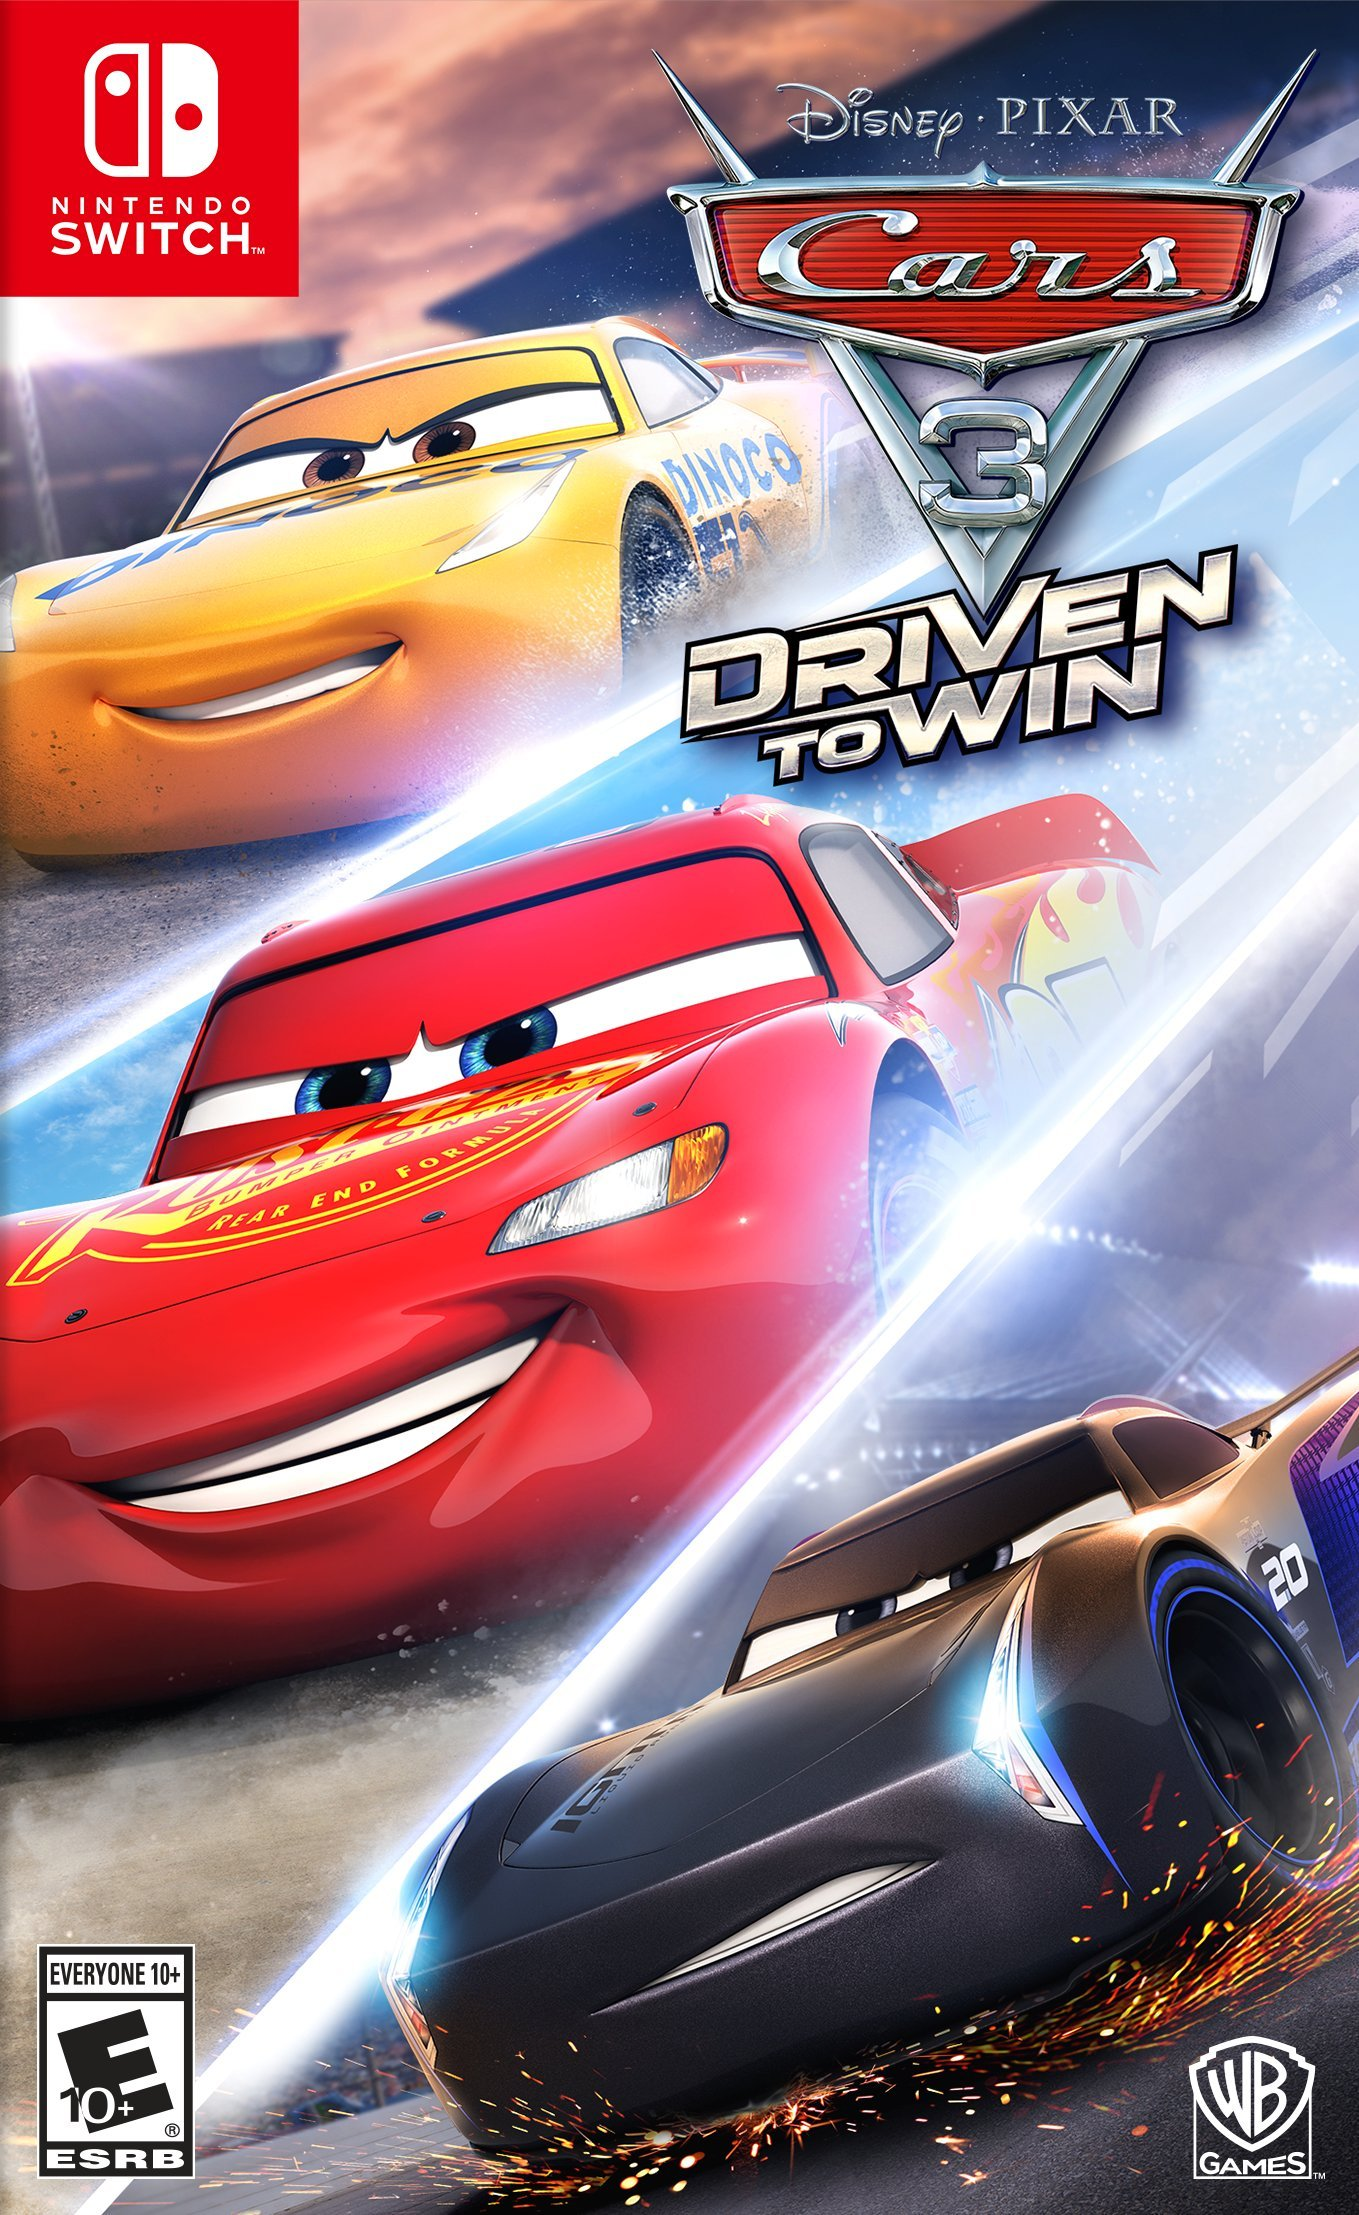 Cars 3 Driven To Win Release Date Xbox 360 PS3 Wii U